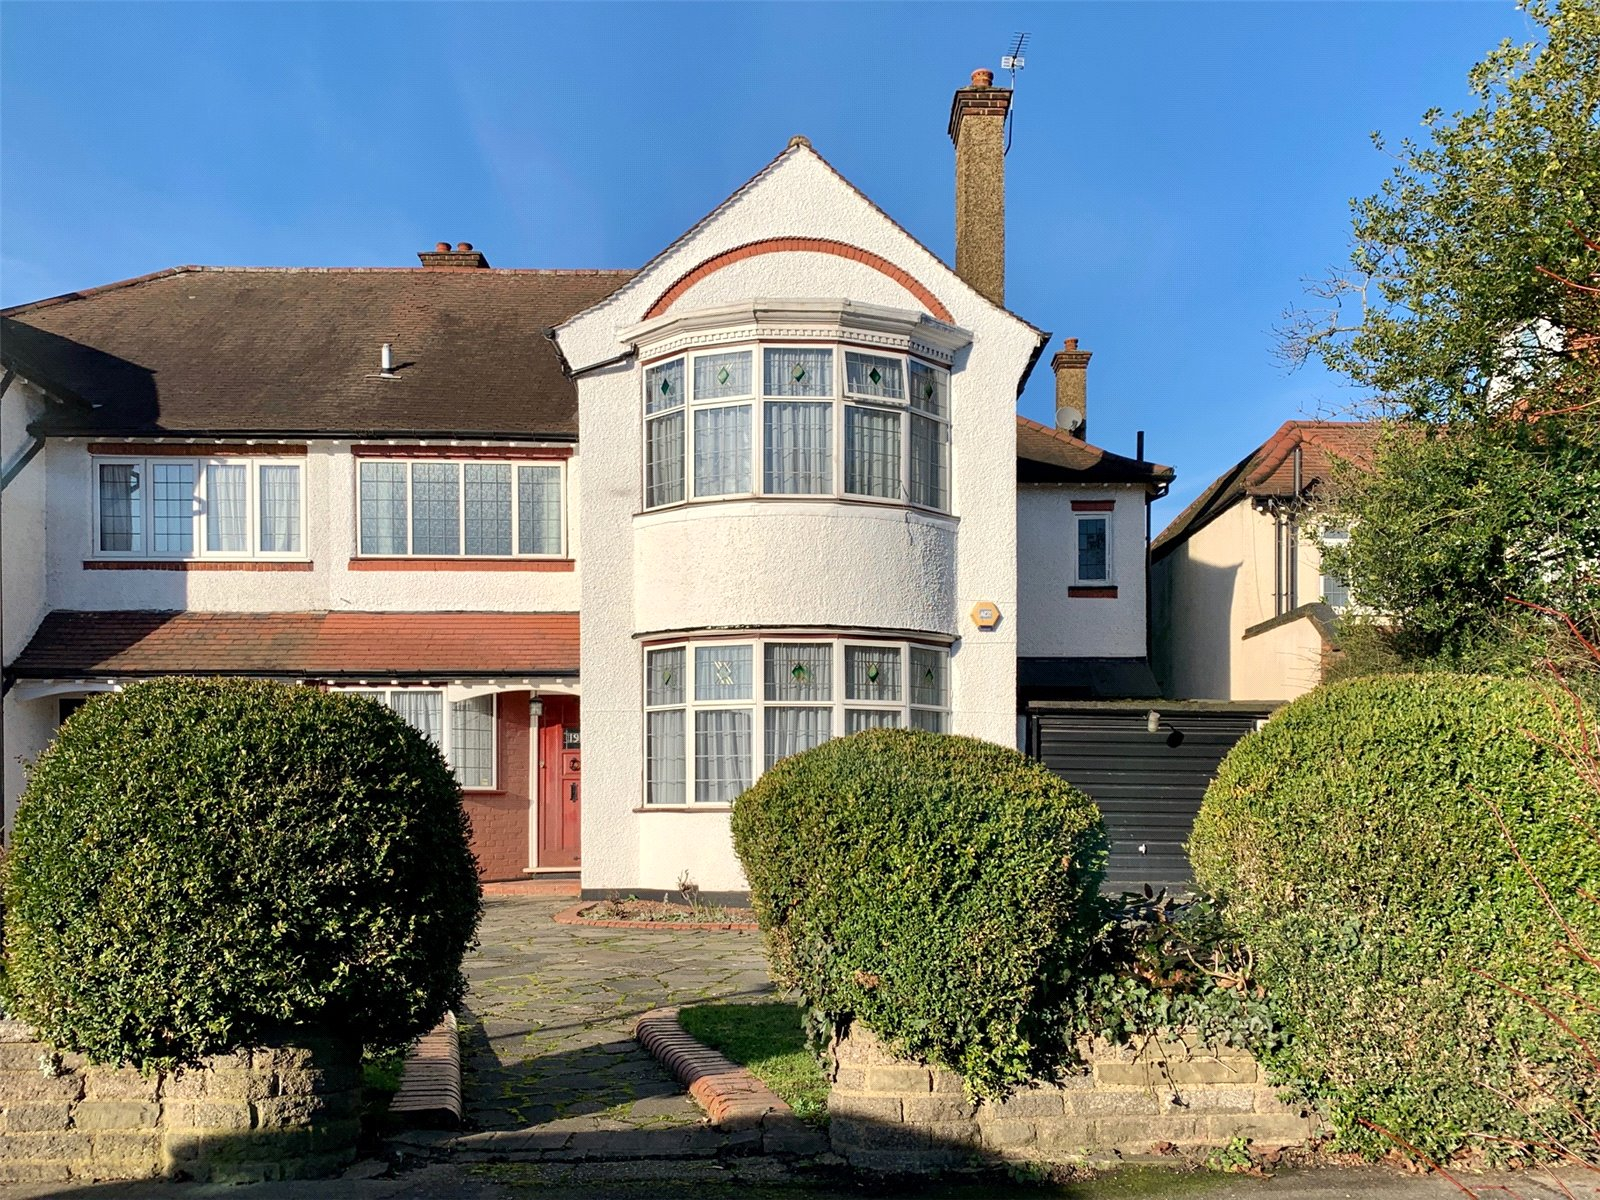 4 bed house for sale in Whetstone, N20 9ED  - Property Image 9